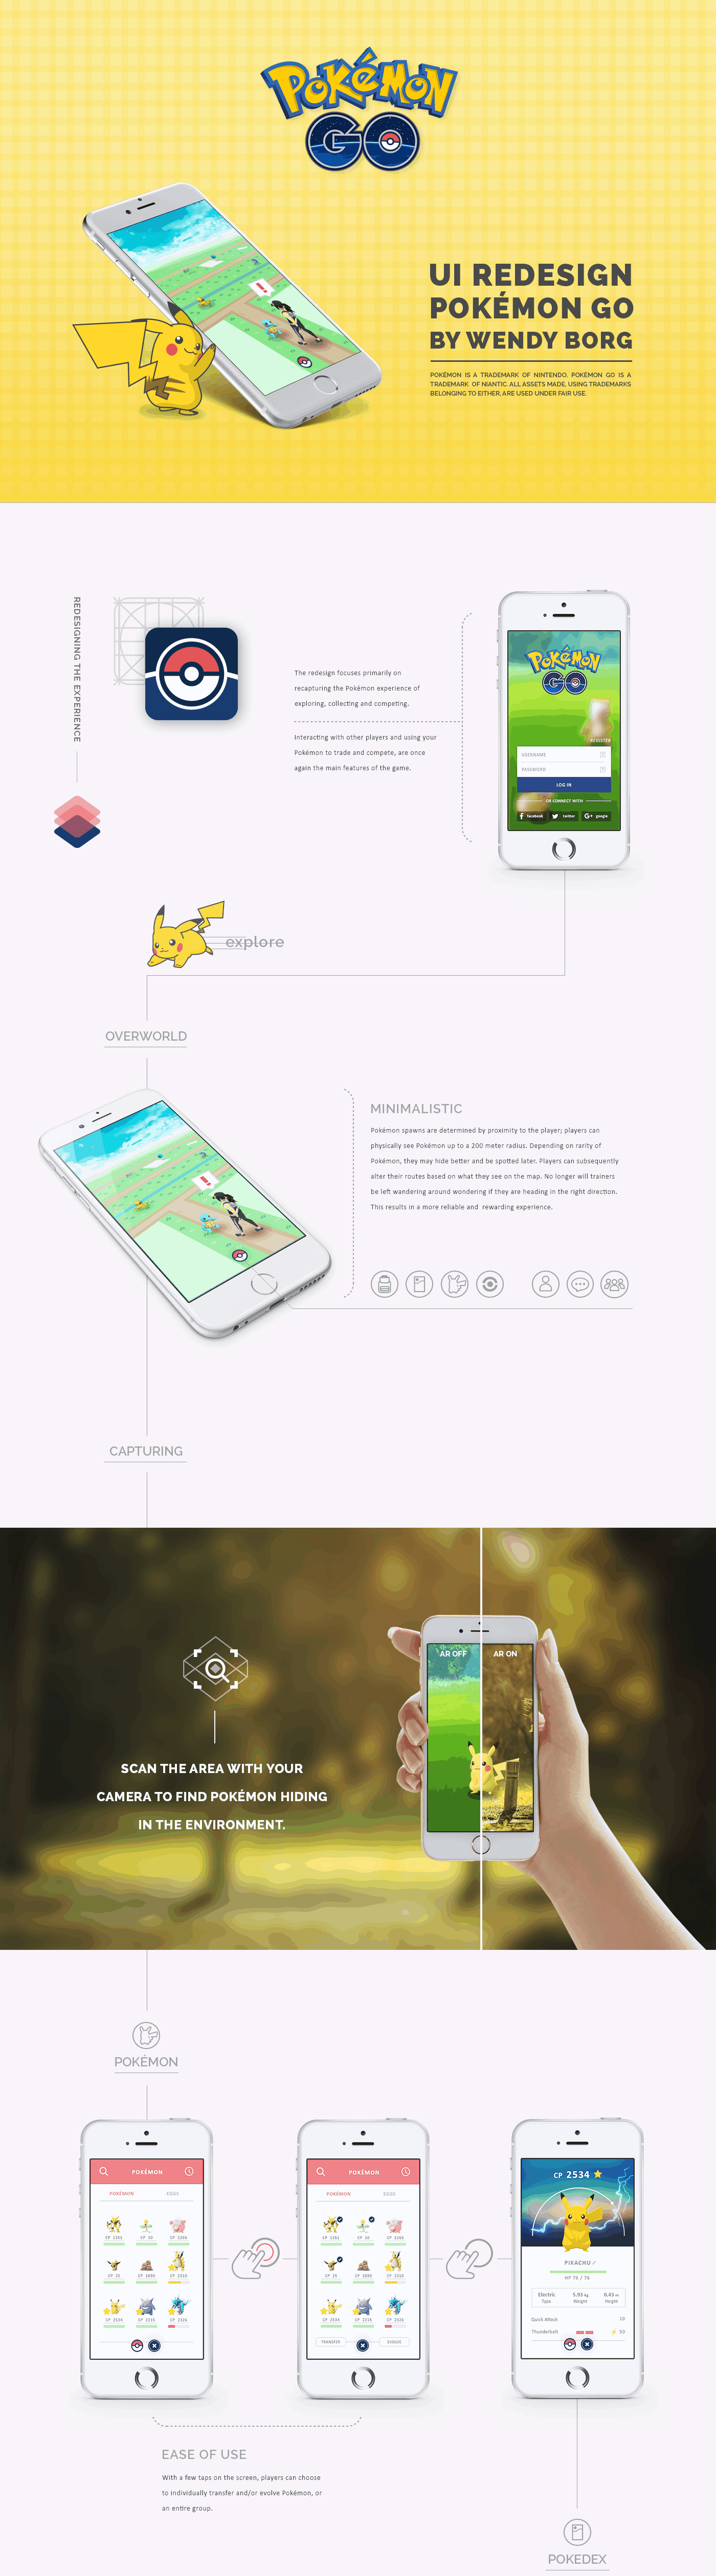 Pokemon GO redesign by Wendy Borg